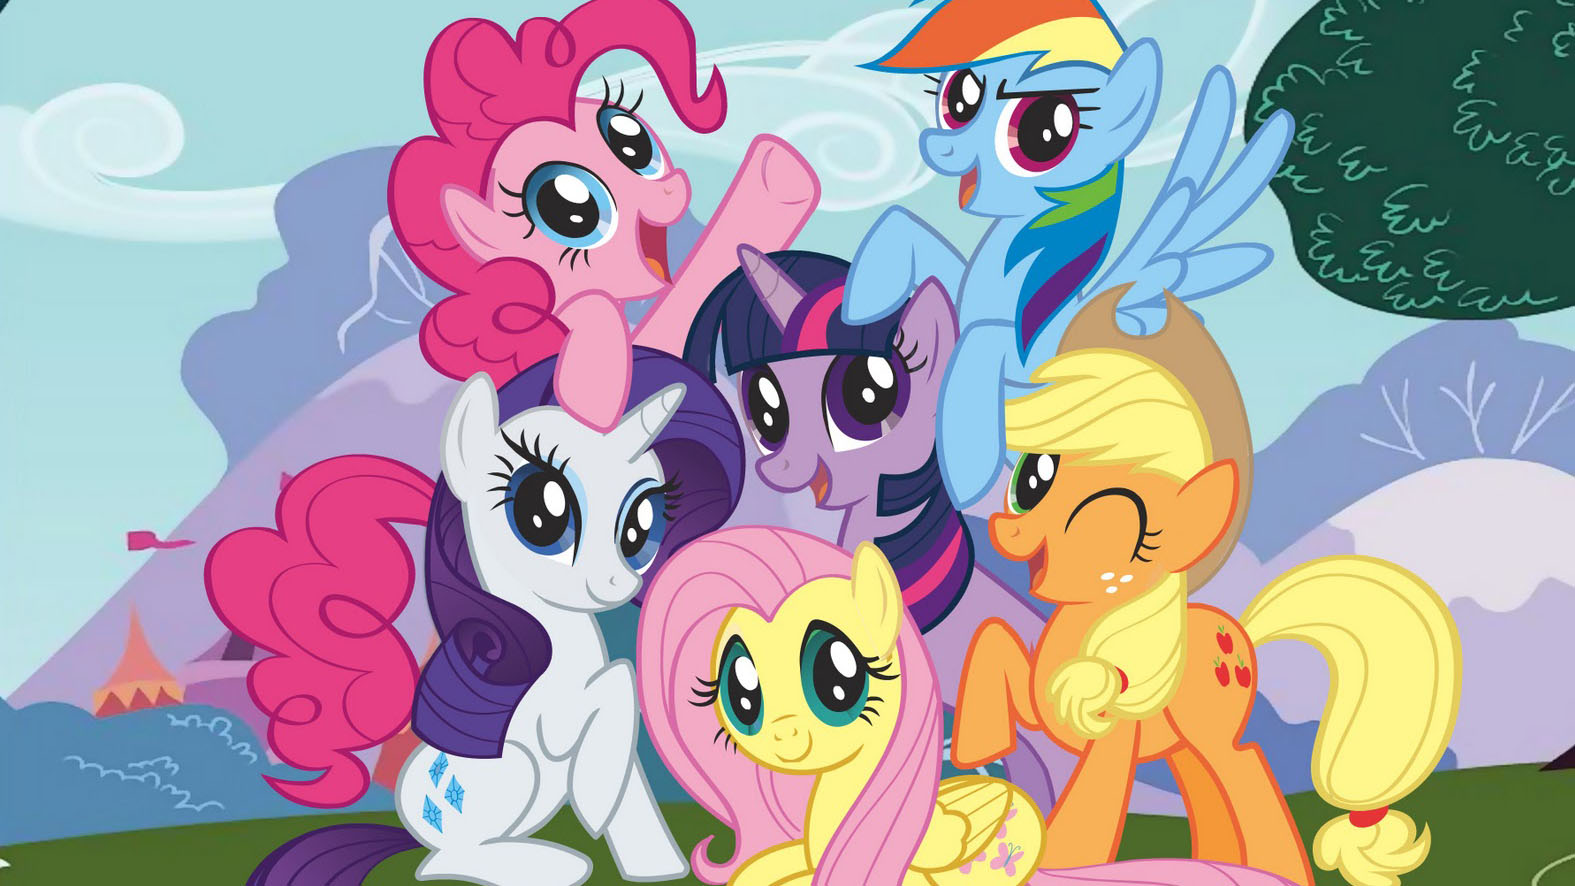 Equestria Daily - MLP Stuff!: My Little Pony Generation 5